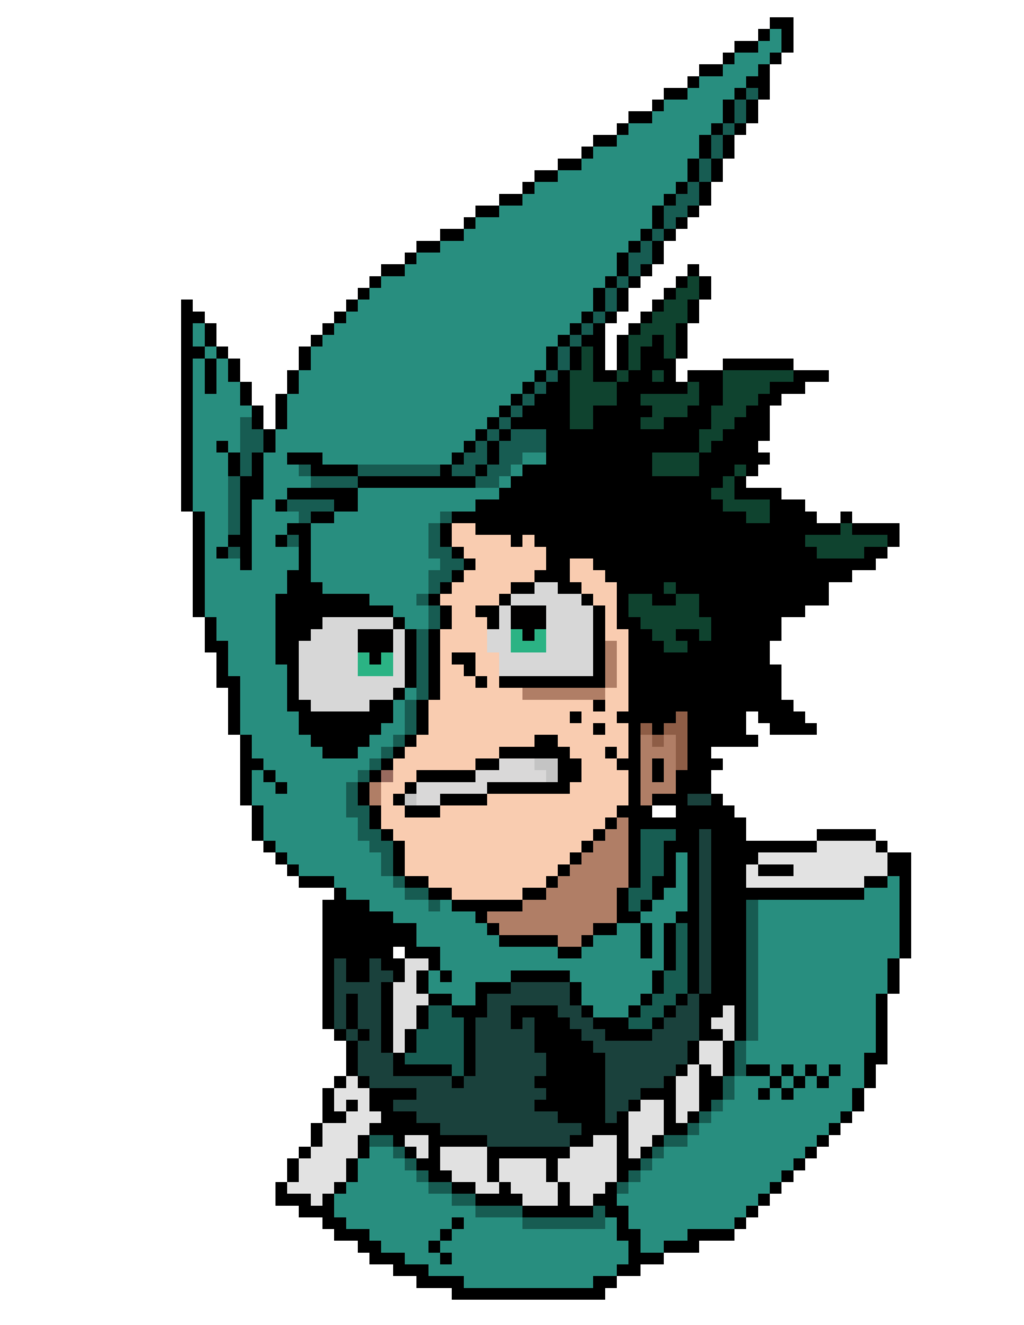 Izuku Midoriya Pixel Art (my hero academia) by nezz94 | Pixel art ...